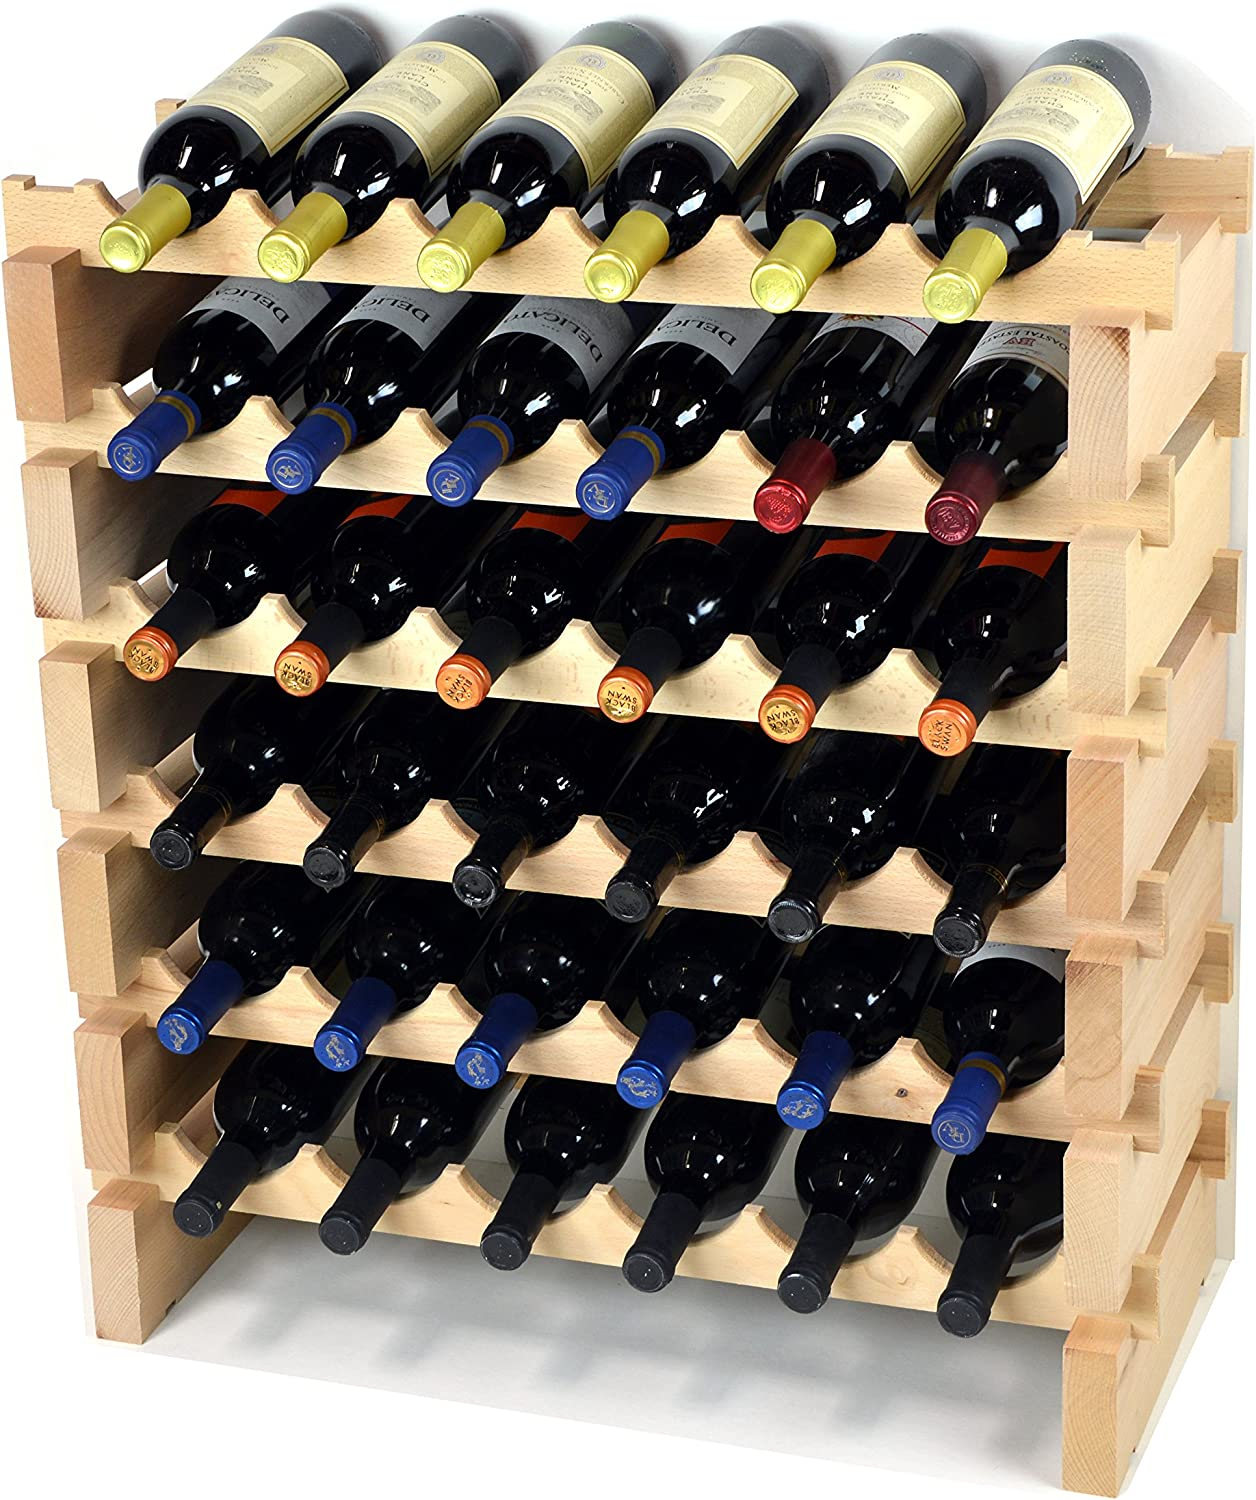 Modular Wine Rack Pine Wood